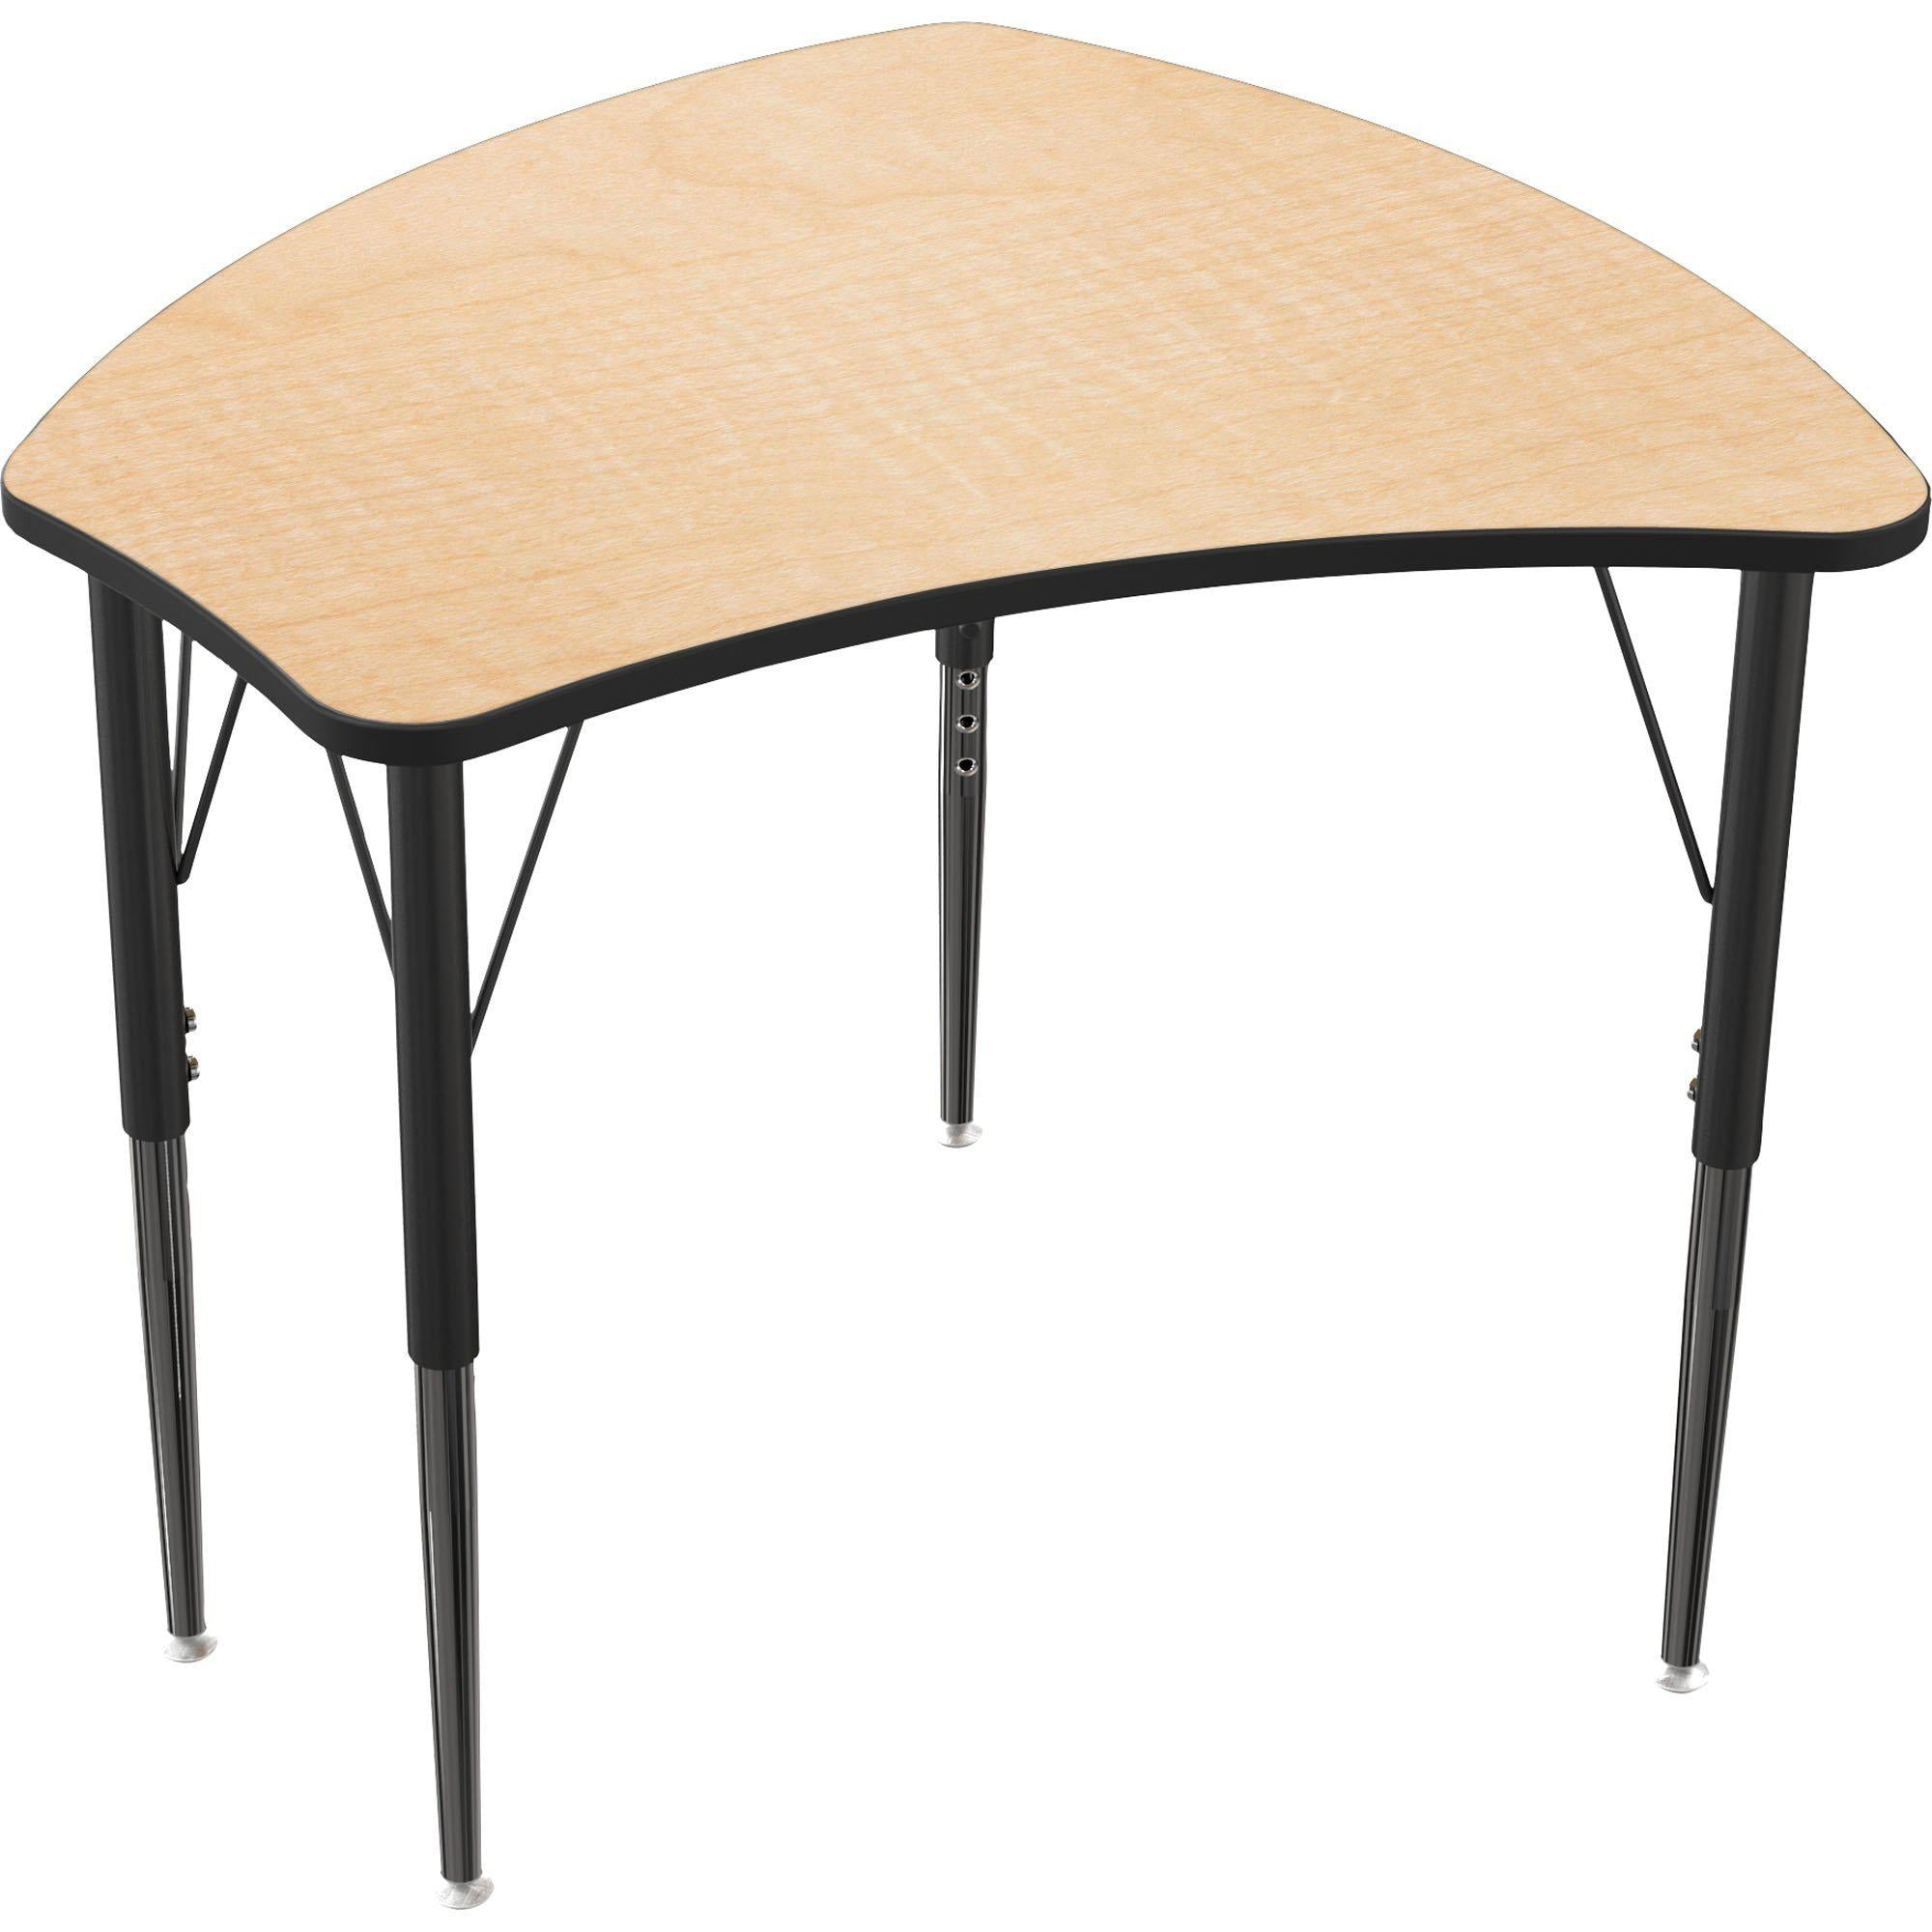 Economy Shapes Desk-Desks-Fusion Maple-